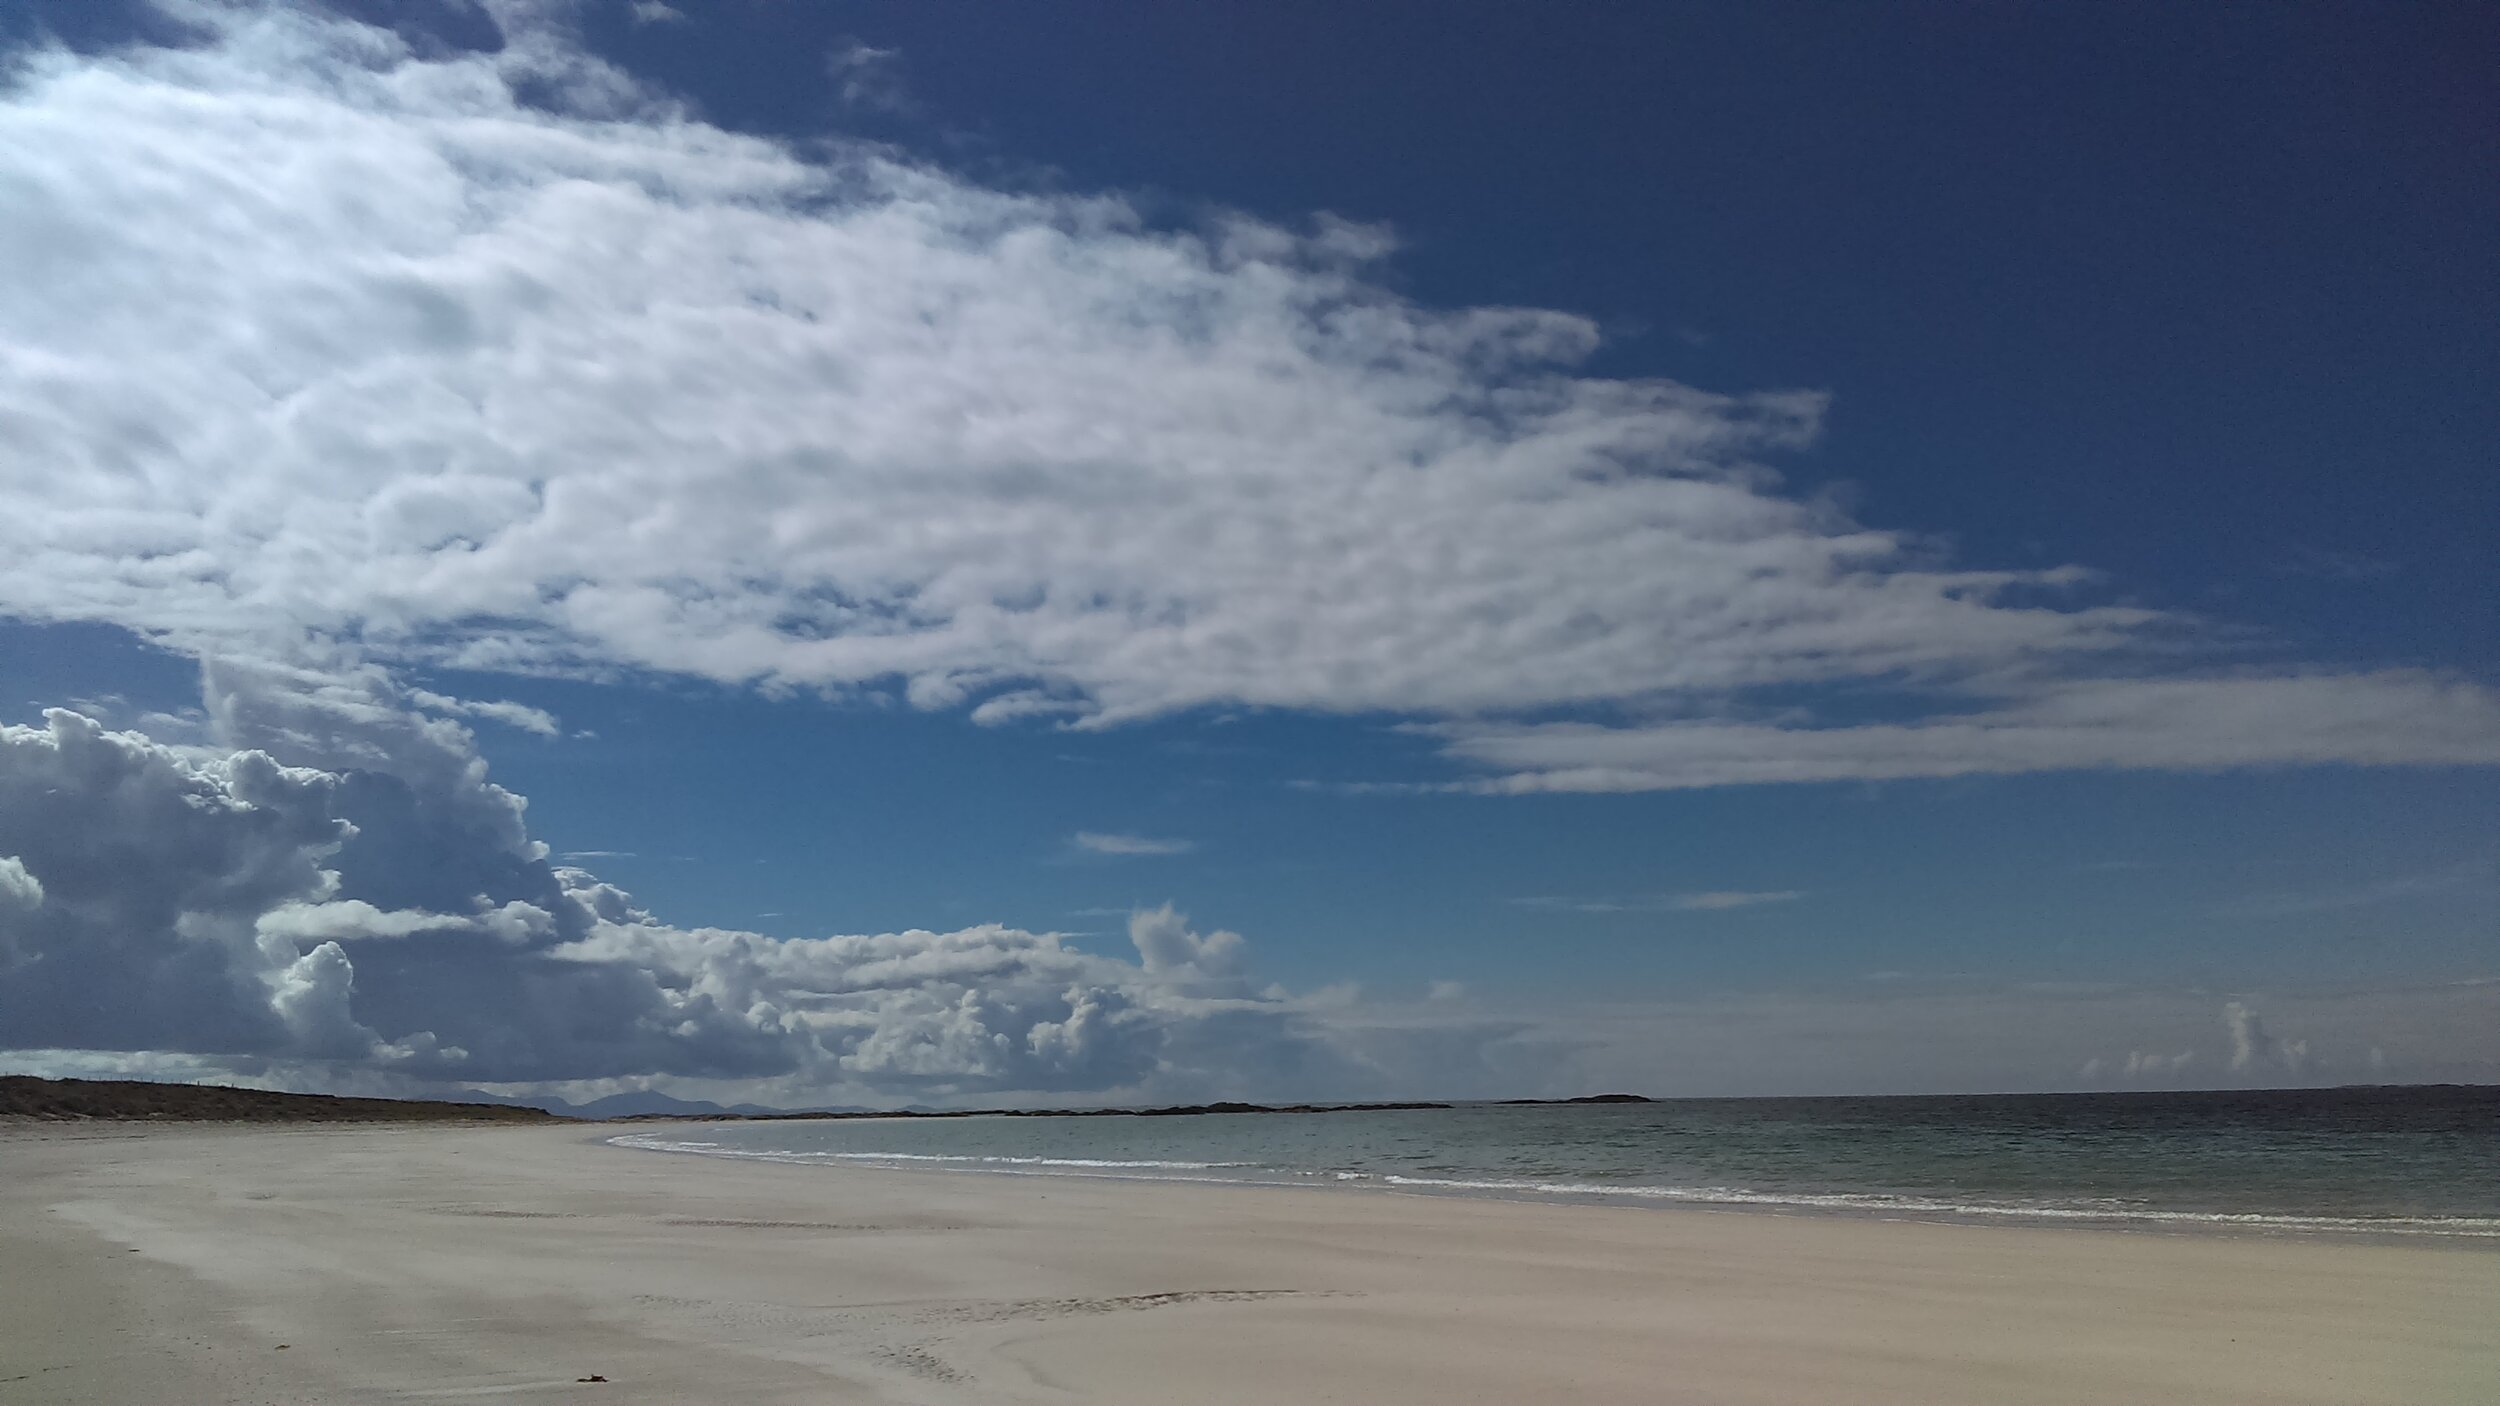 Balranald beach looking glorious in better weather